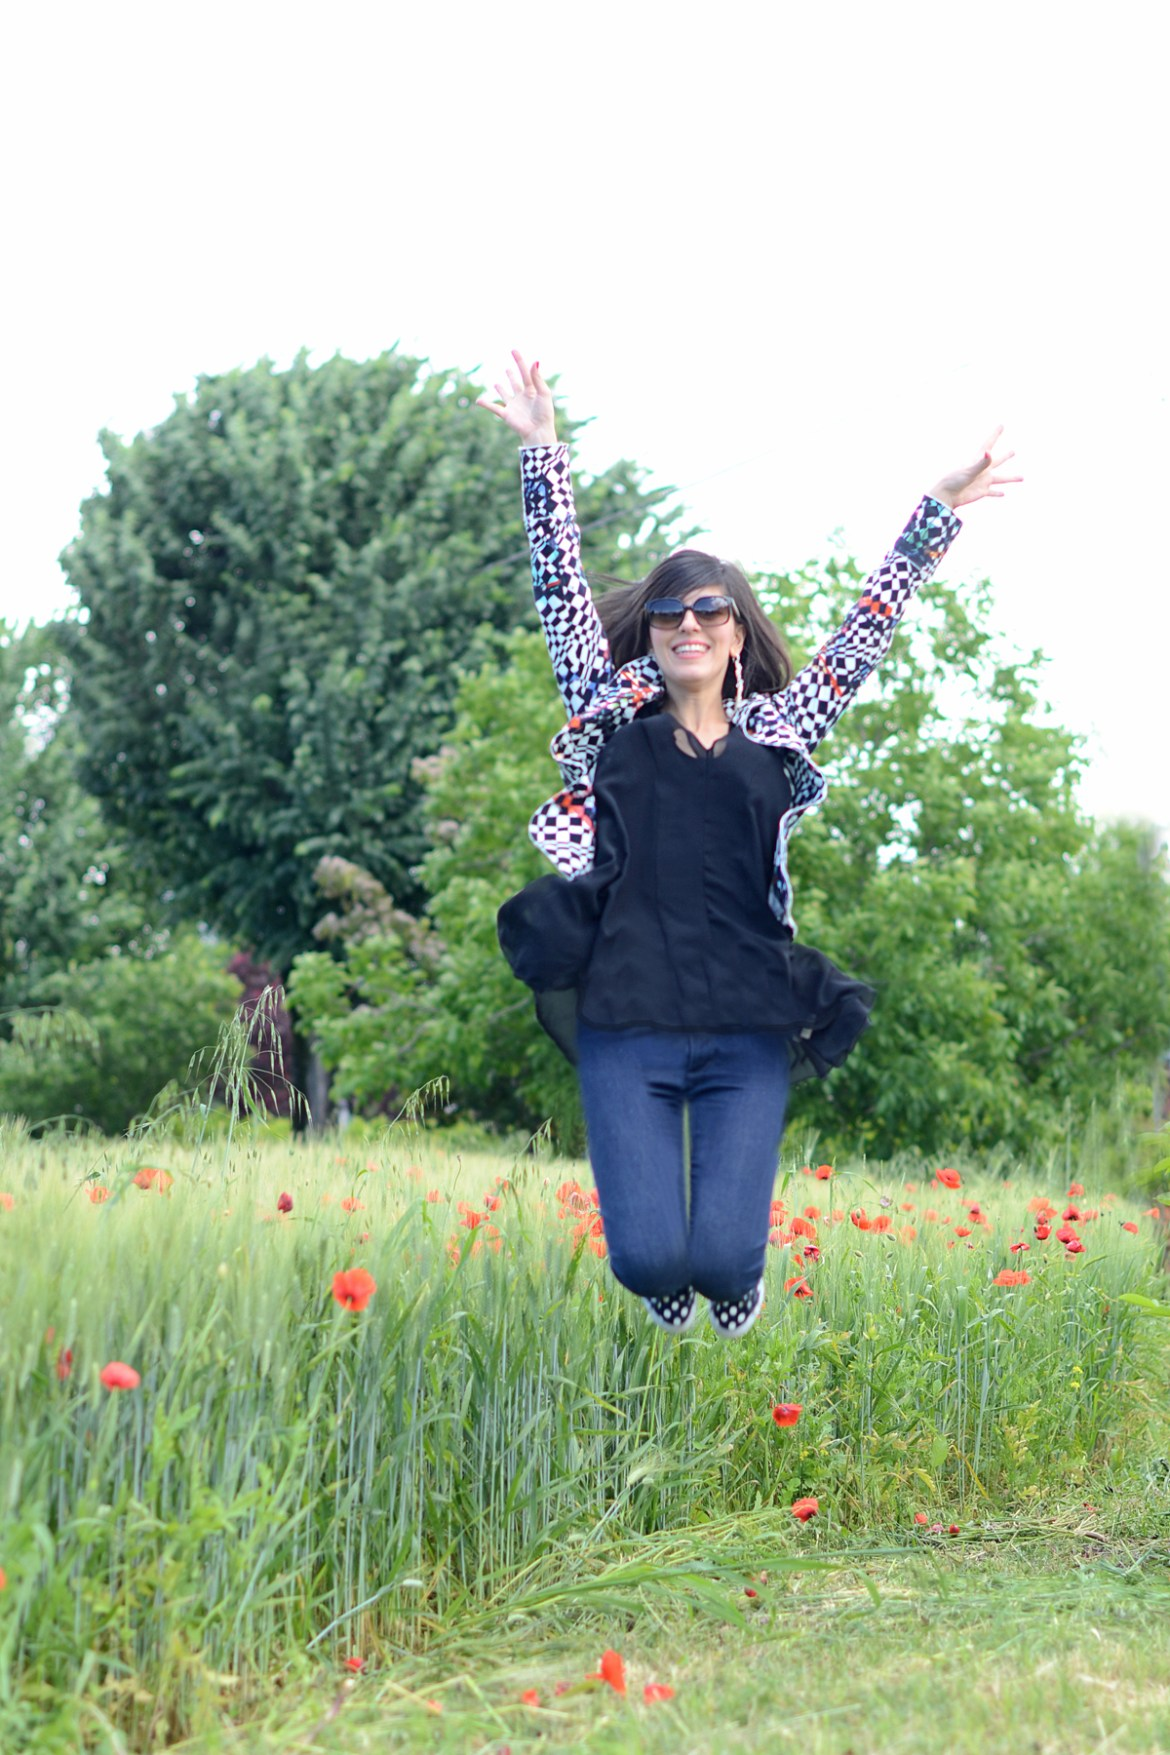 Modena countryside: Chessboard jacket & Polka dots sneakers